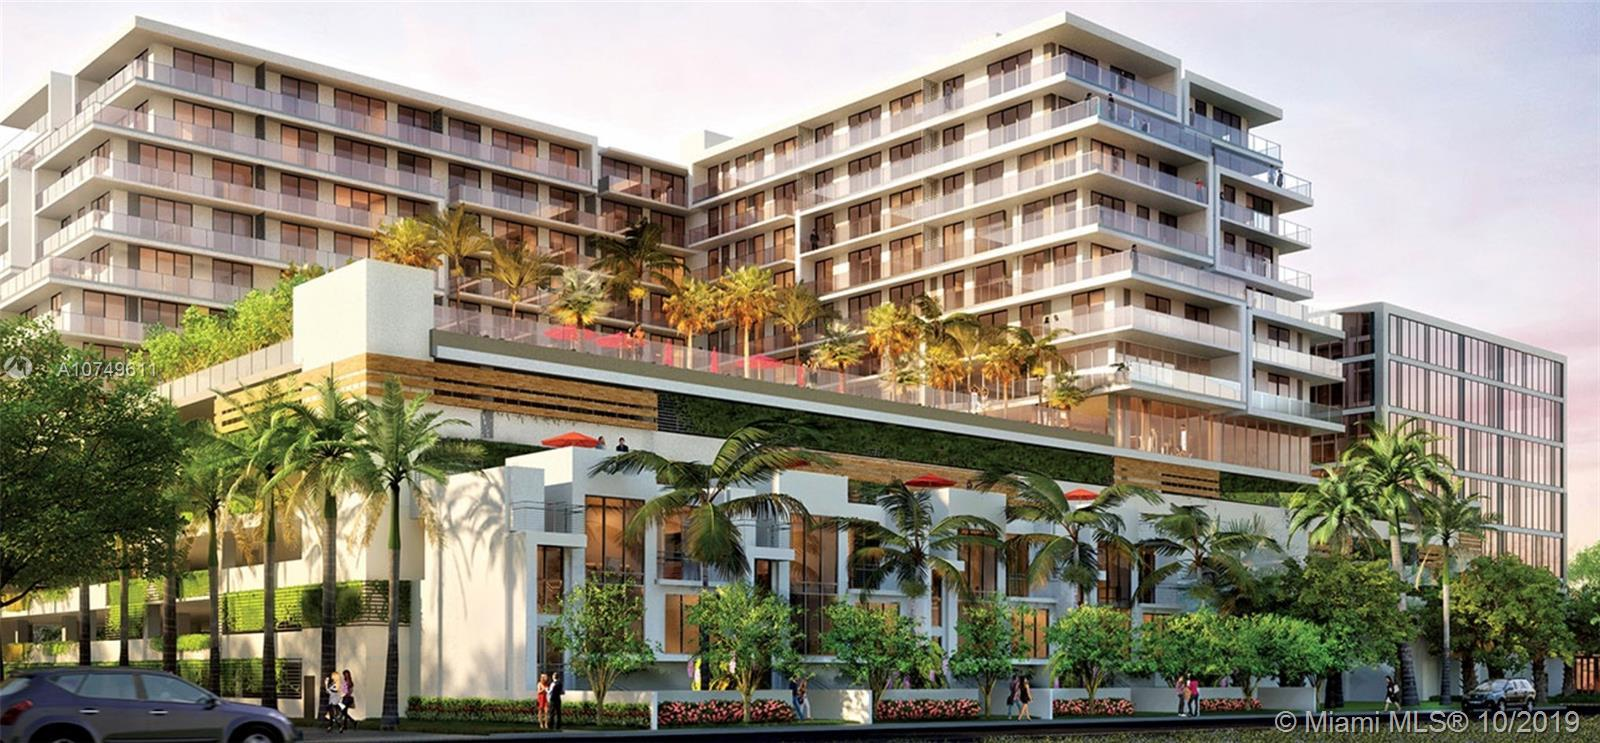 Brand New 1 Bed 2 Bath + Den. Welcome to Aventura ParkSquare, a vibrant new community designed with